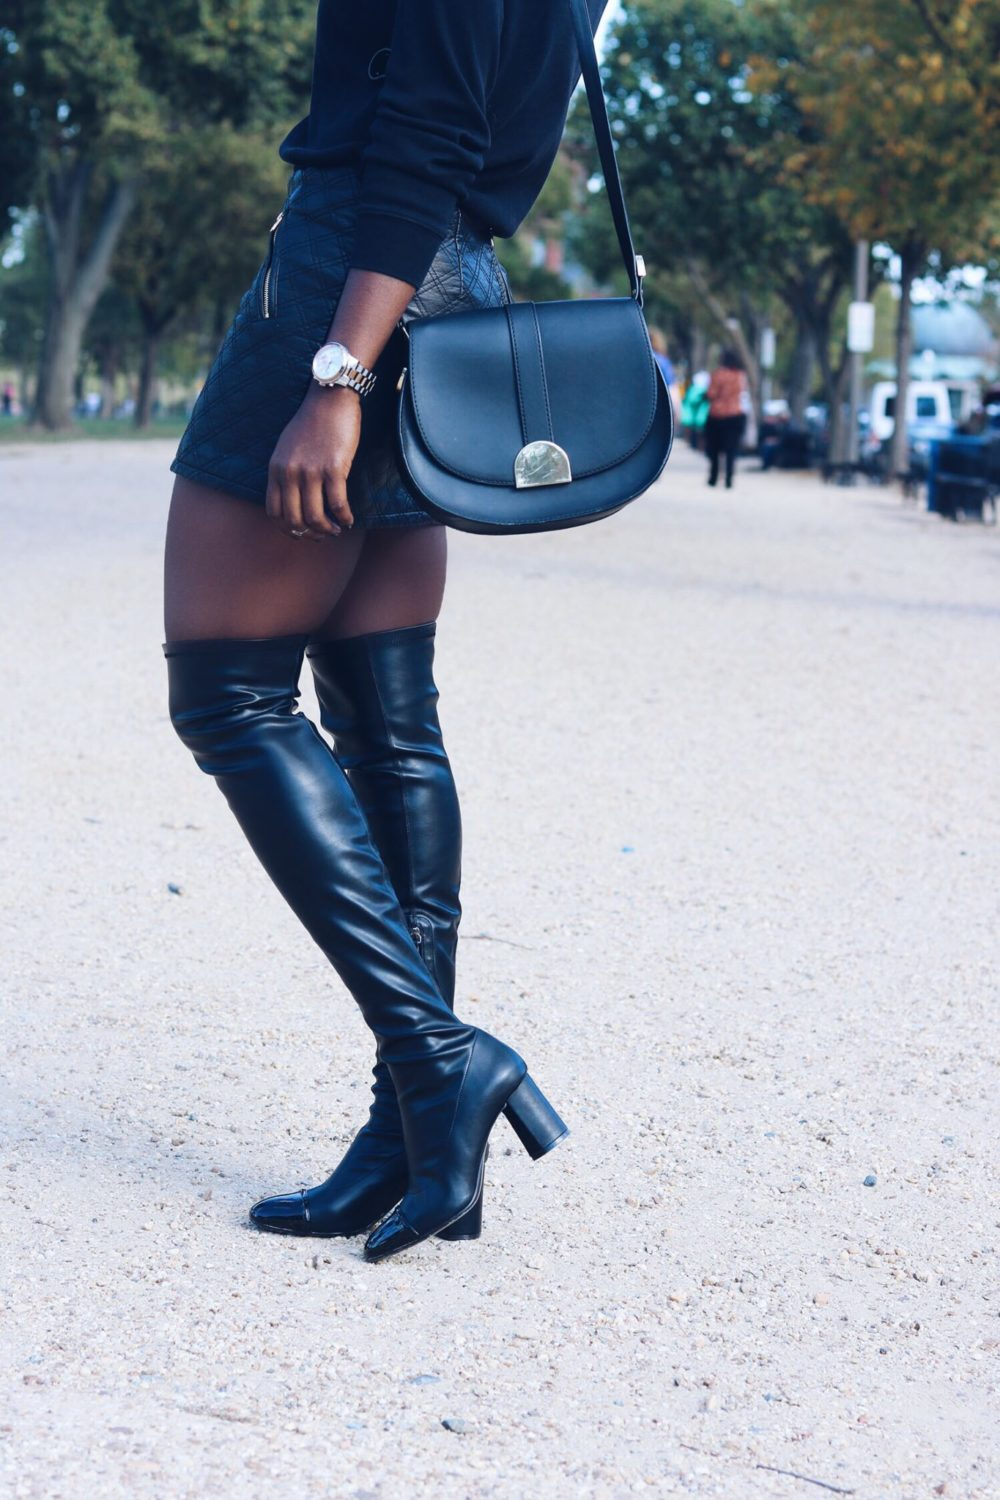 style-synopsis-cross-body-bag-black-knee-high-boots